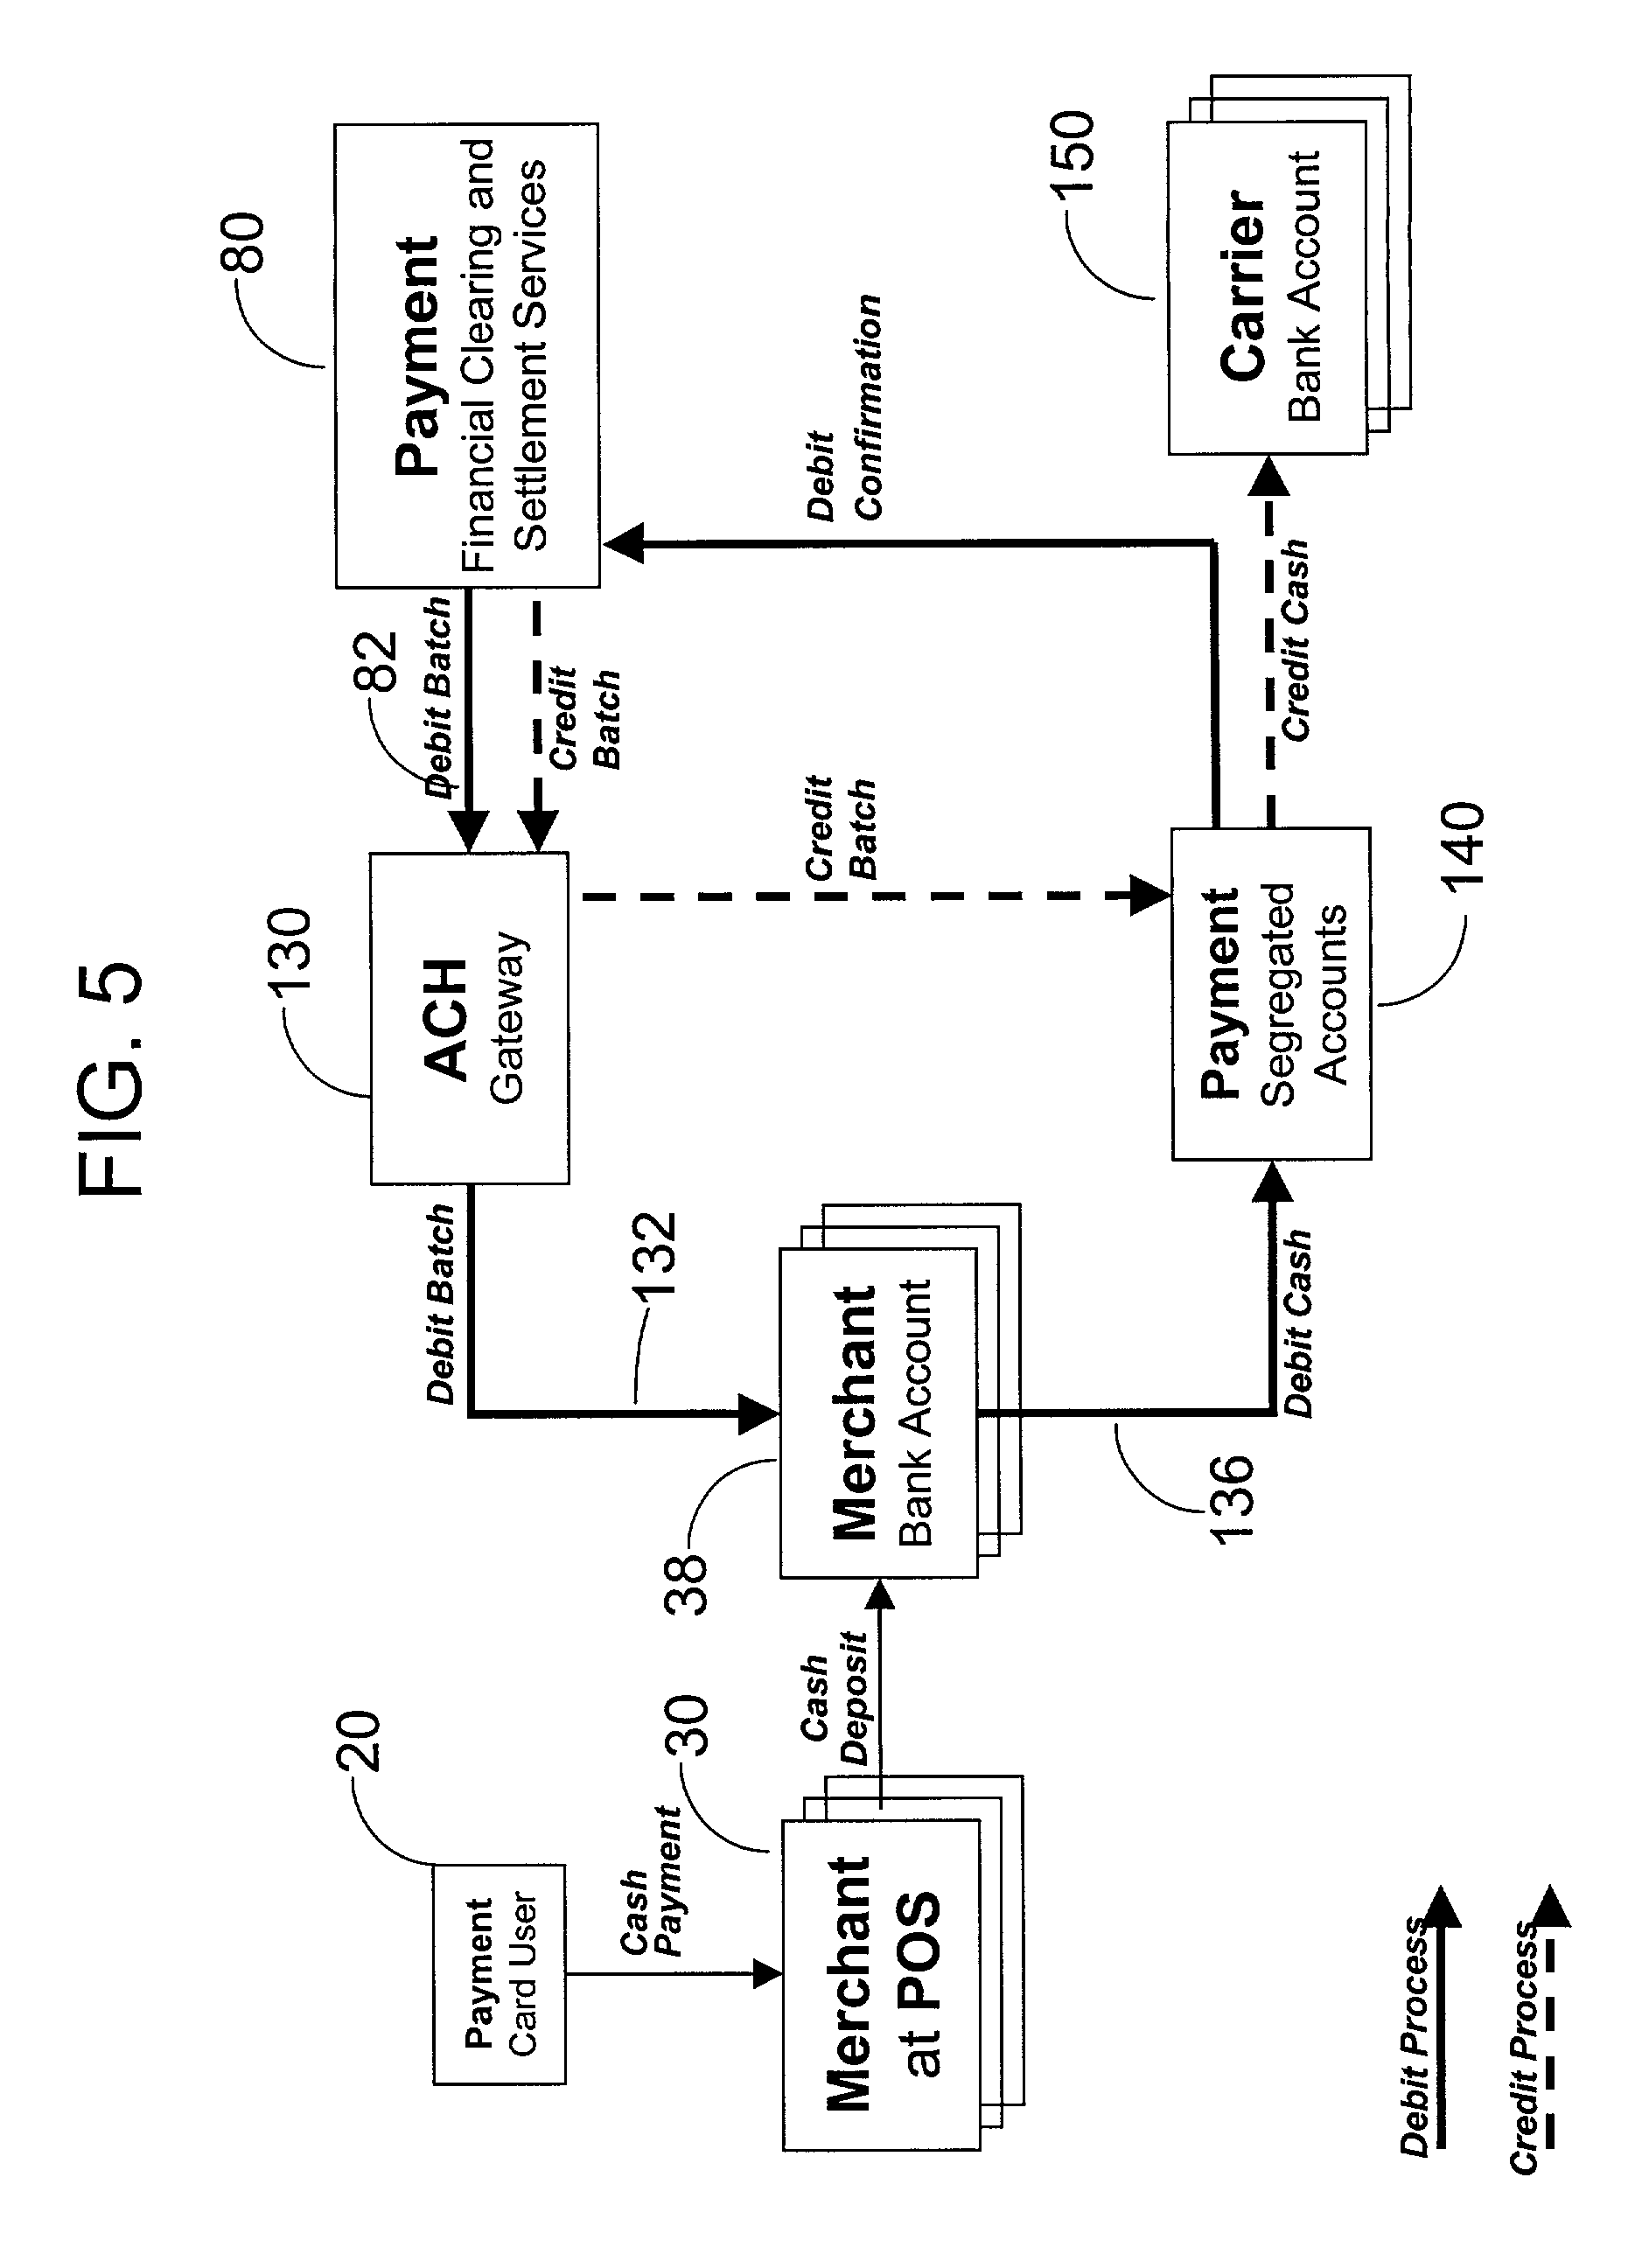 patent us8086530 - electronic payment system utilizing intermediary account